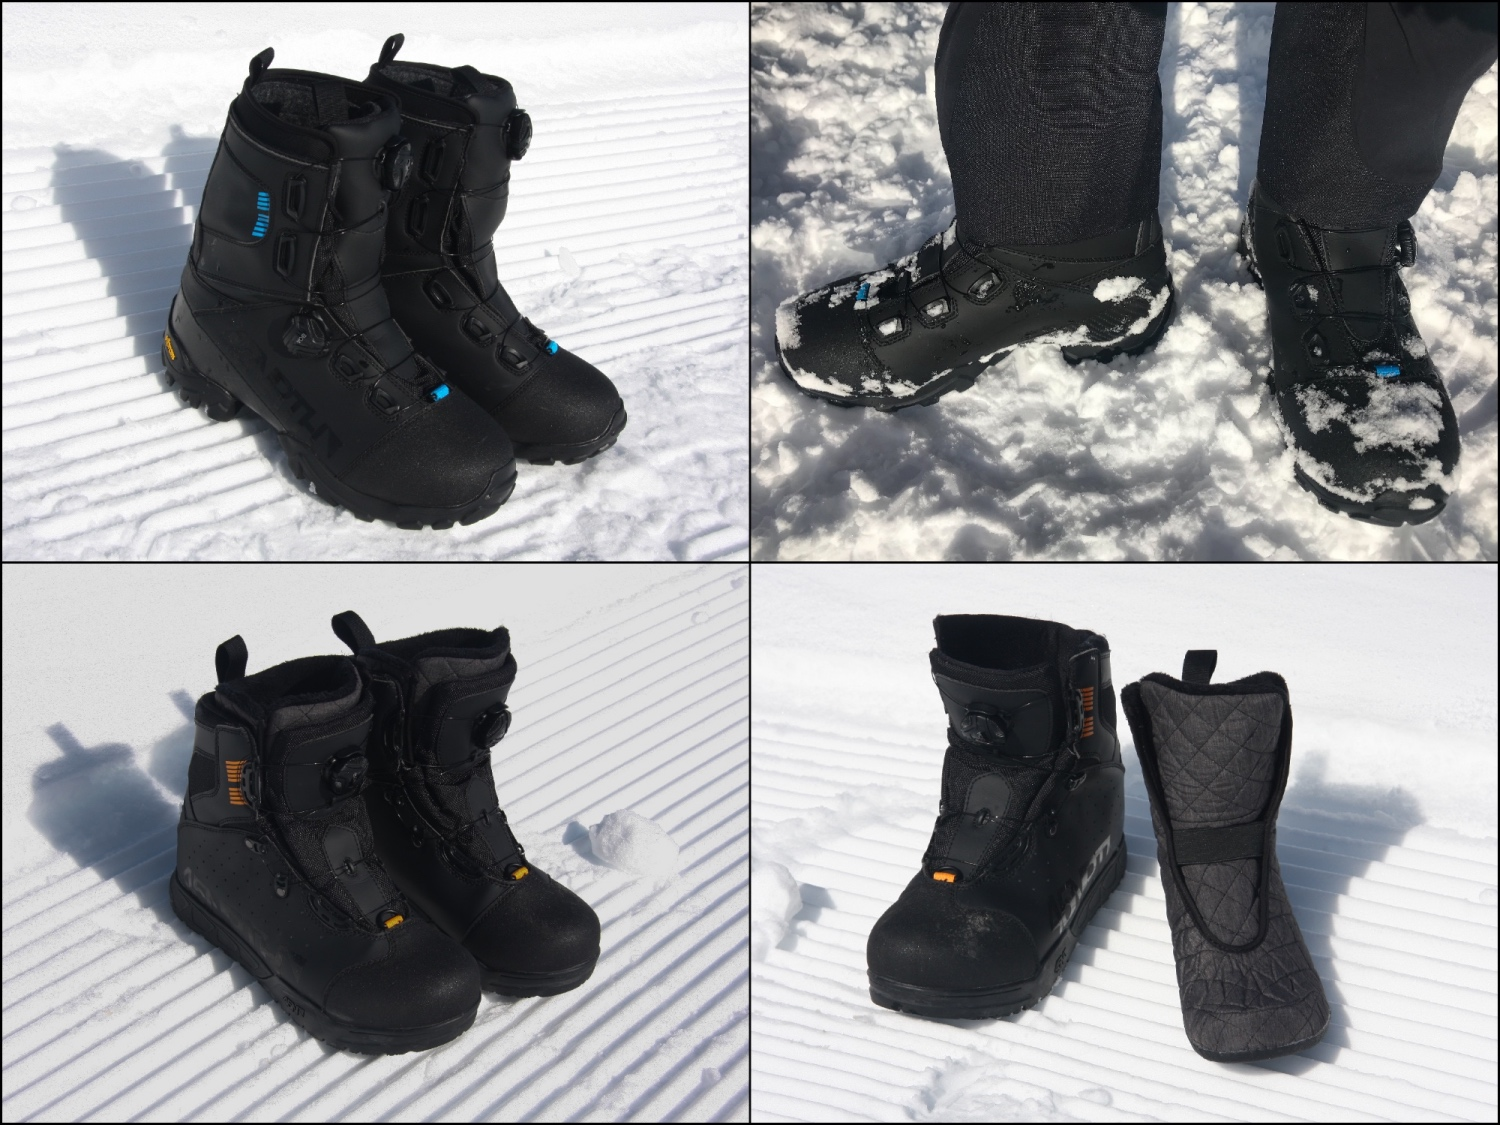 The star of the 45NRTH winter cycling line-up are their extreme cold weather boots, the Wolfgar and Wolvhammer. Photos by Jason Sumner